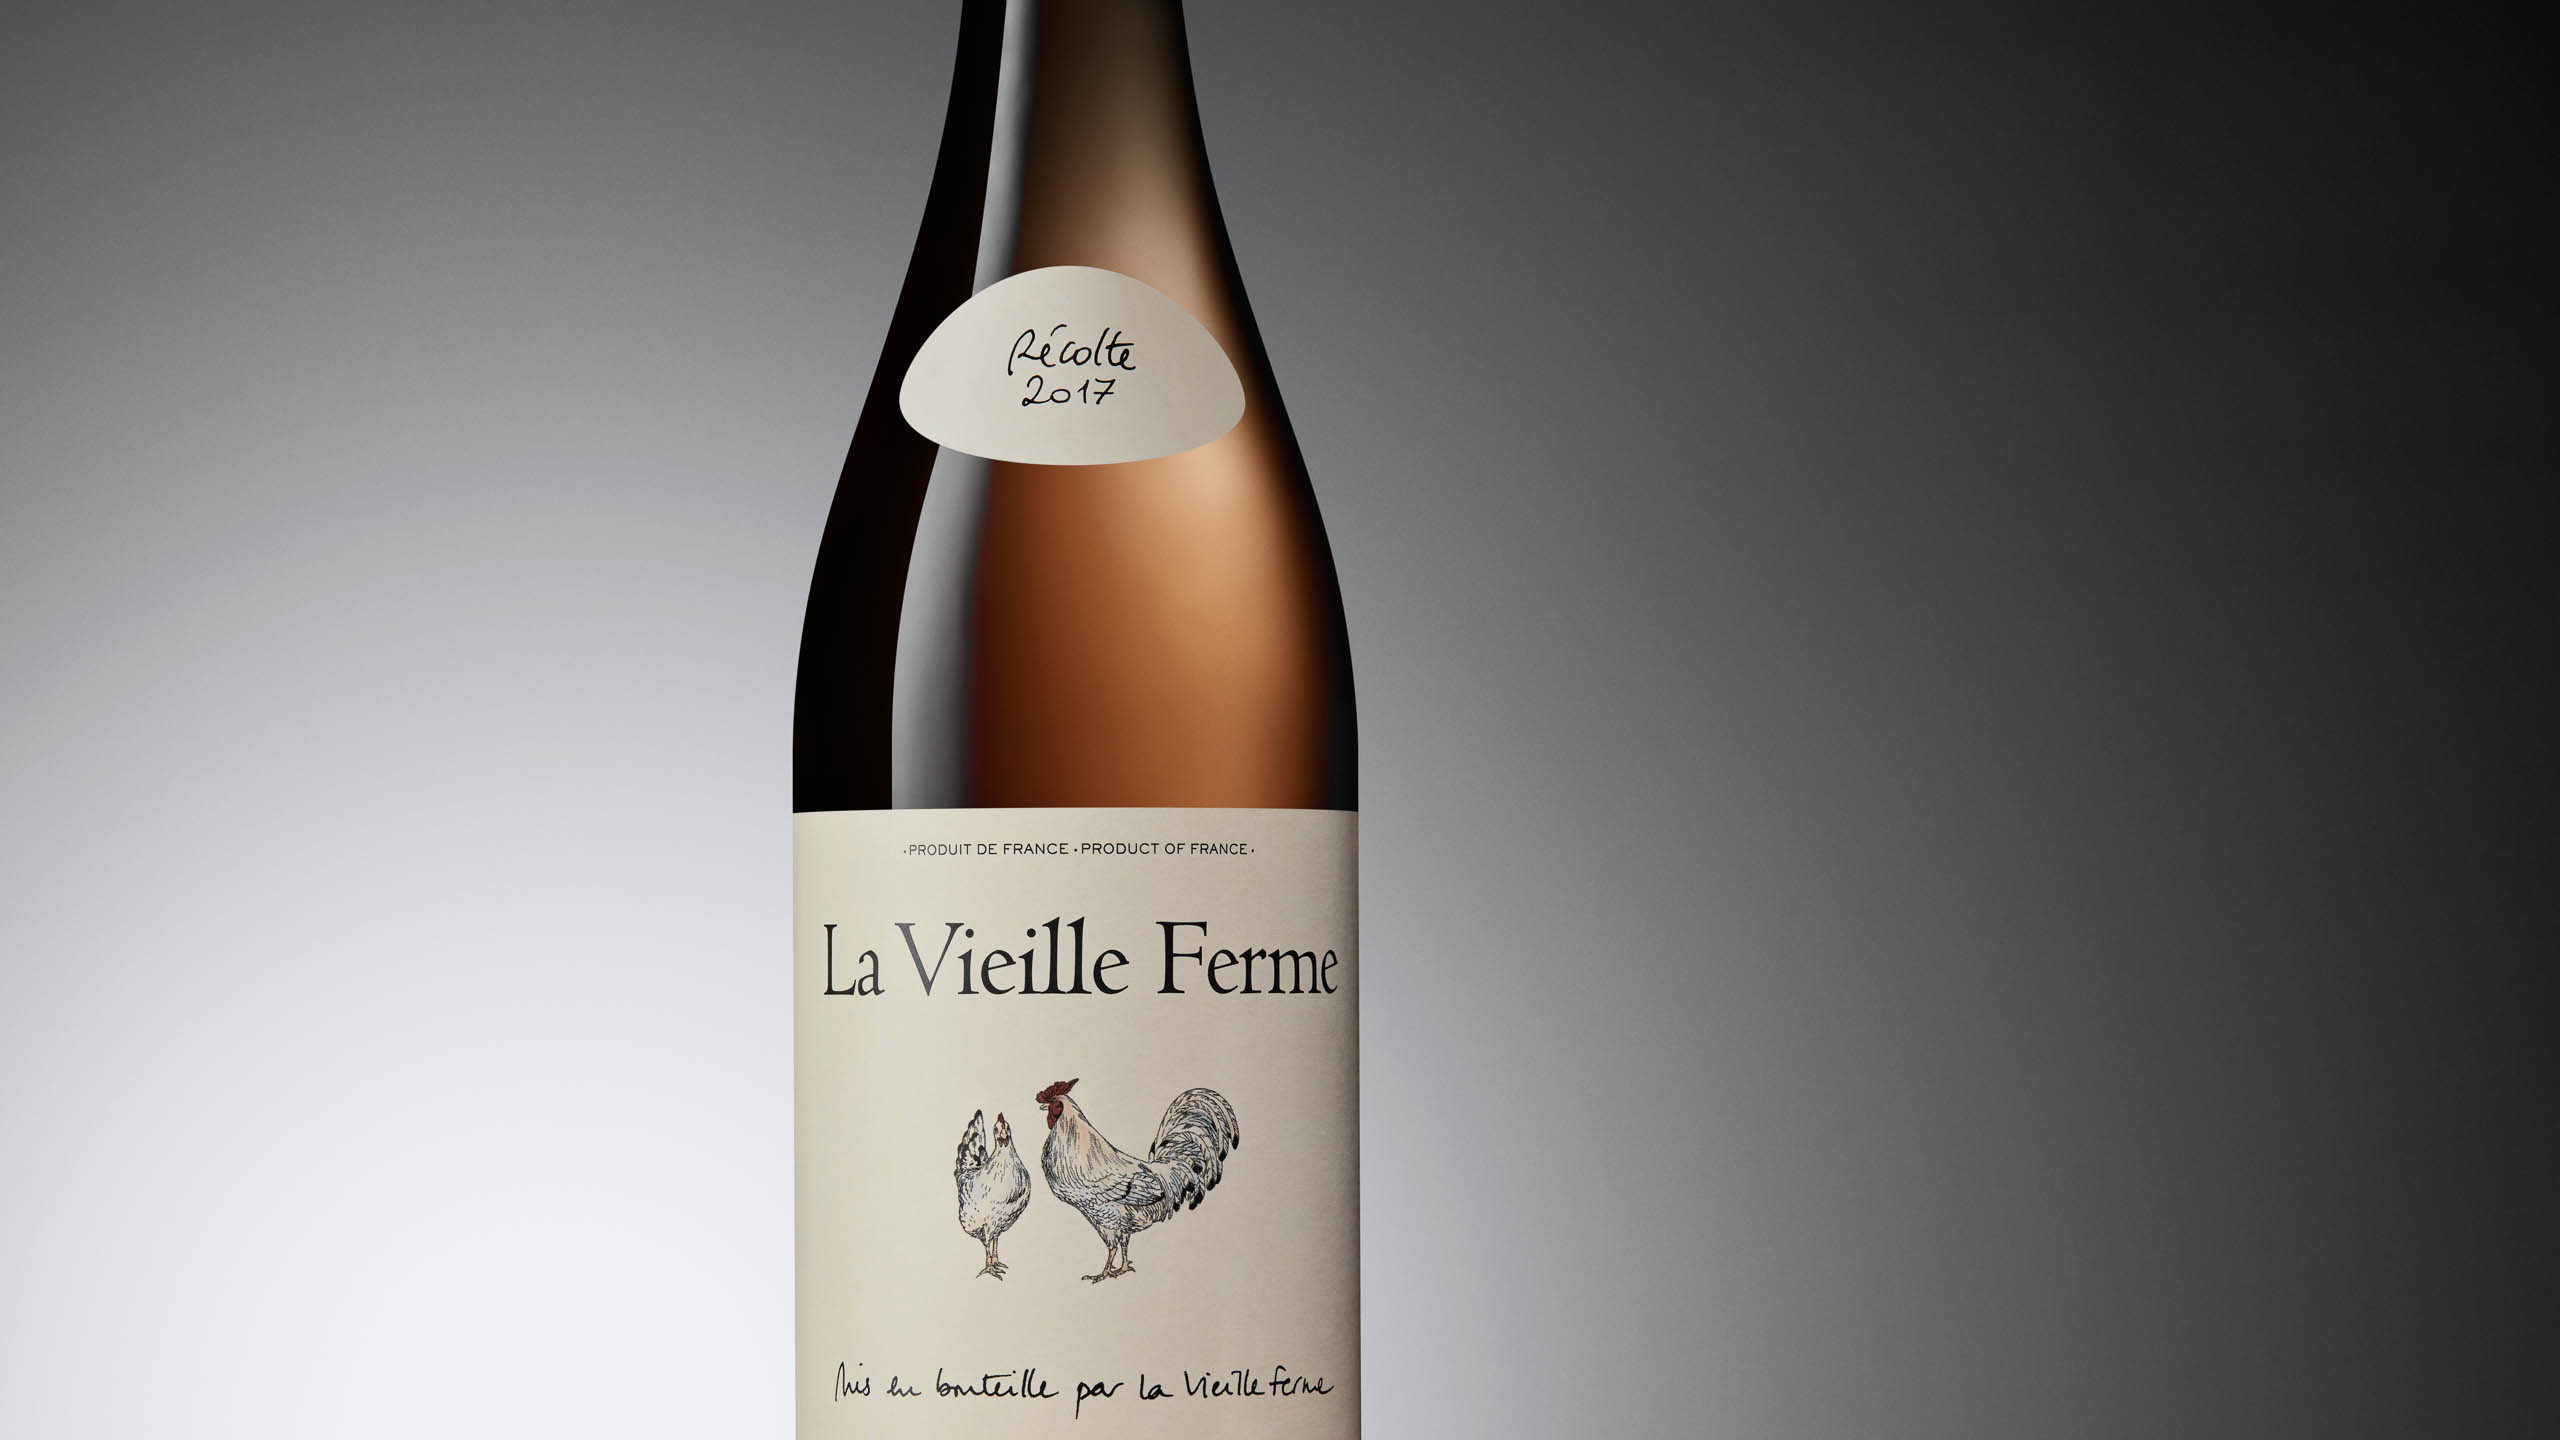 La Vieille Ferme Wine Bottle